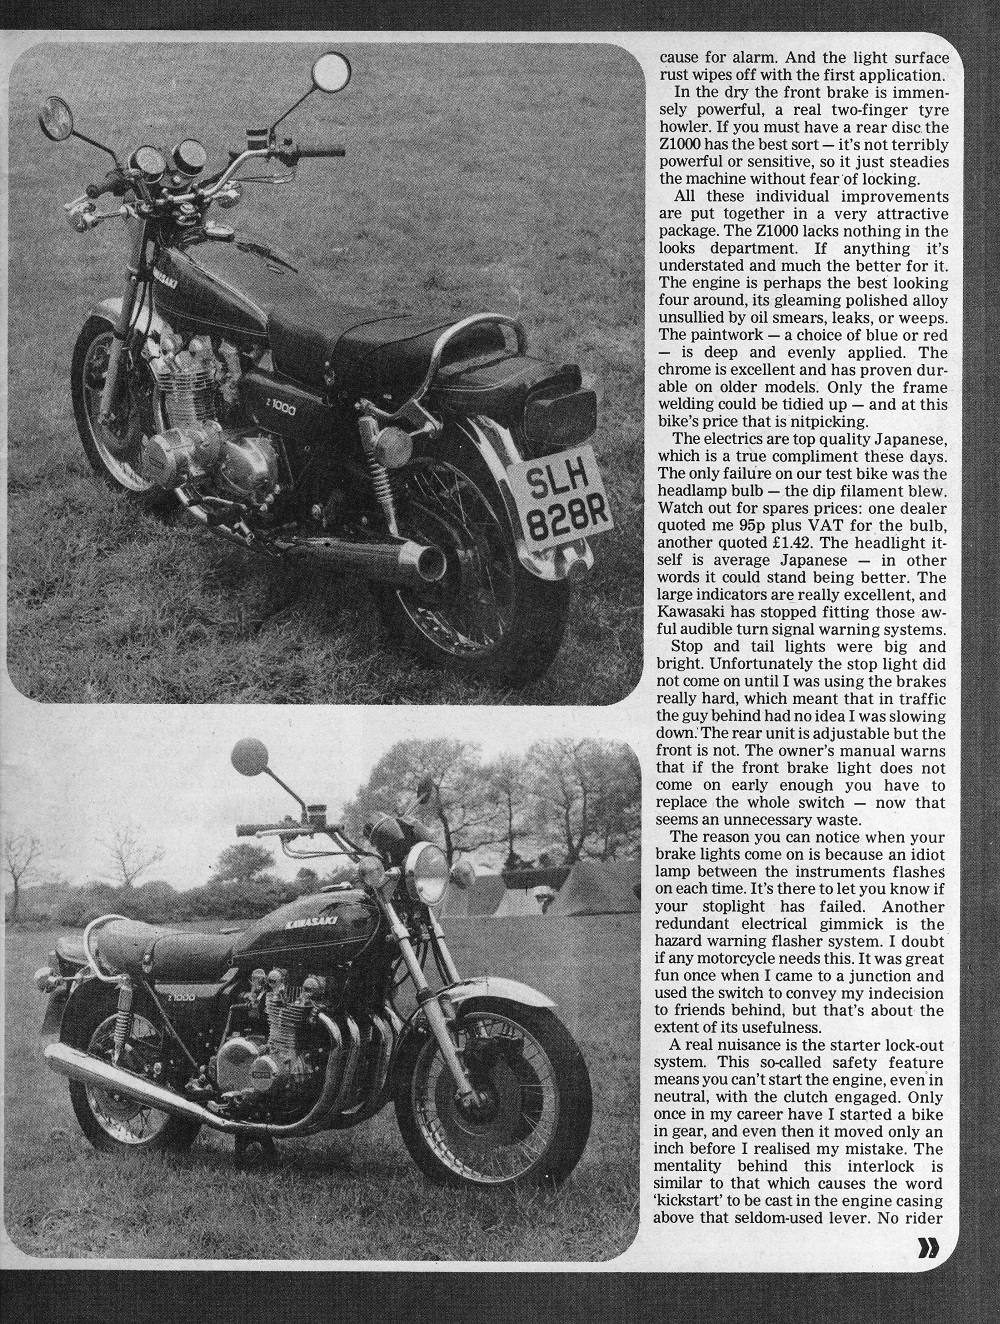 1977 Kawasaki Z1000 road test.4.jpg